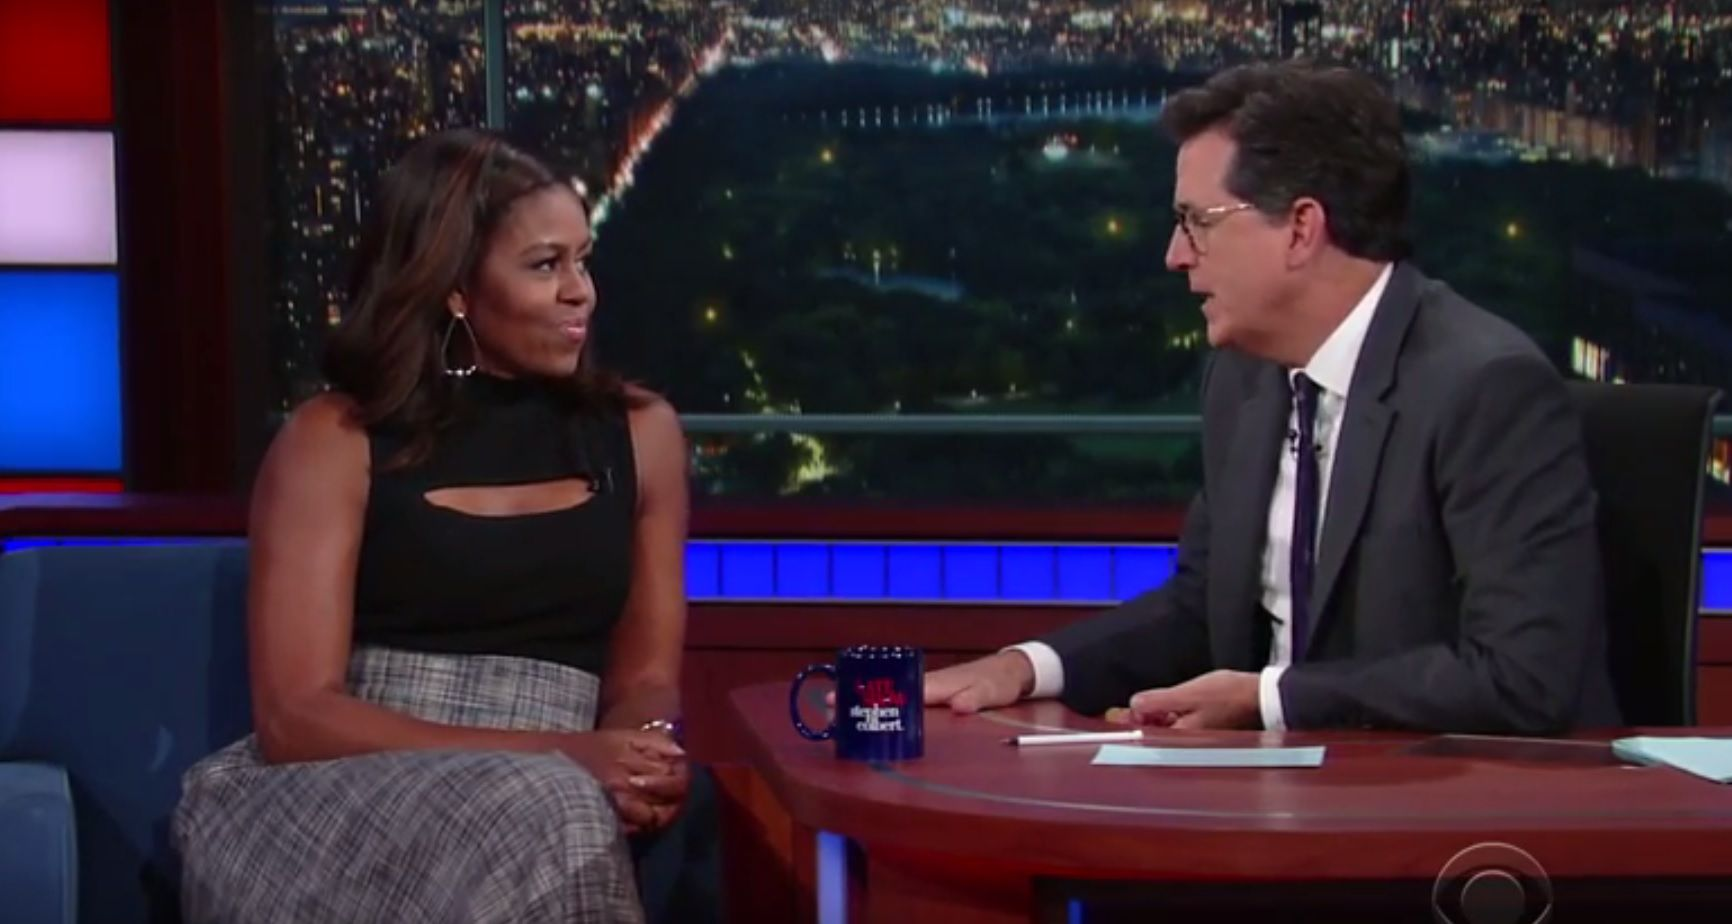 Michelle Obama on The Late Show